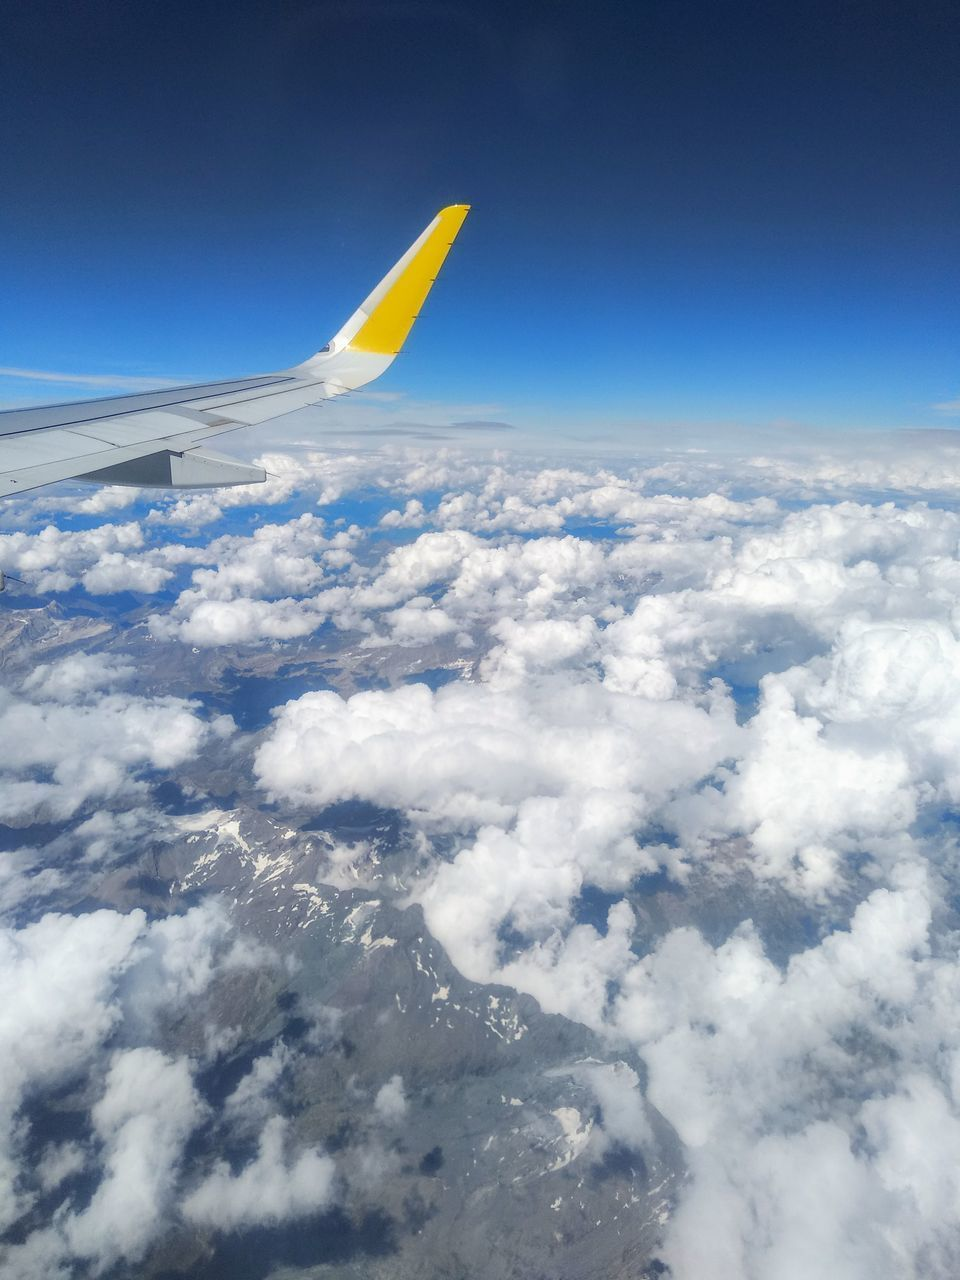 cloud - sky, sky, air vehicle, airplane, flying, aircraft wing, mode of transportation, no people, beauty in nature, transportation, nature, cloudscape, scenics - nature, blue, travel, mid-air, aerial view, day, outdoors, sunlight, softness, above, meteorology